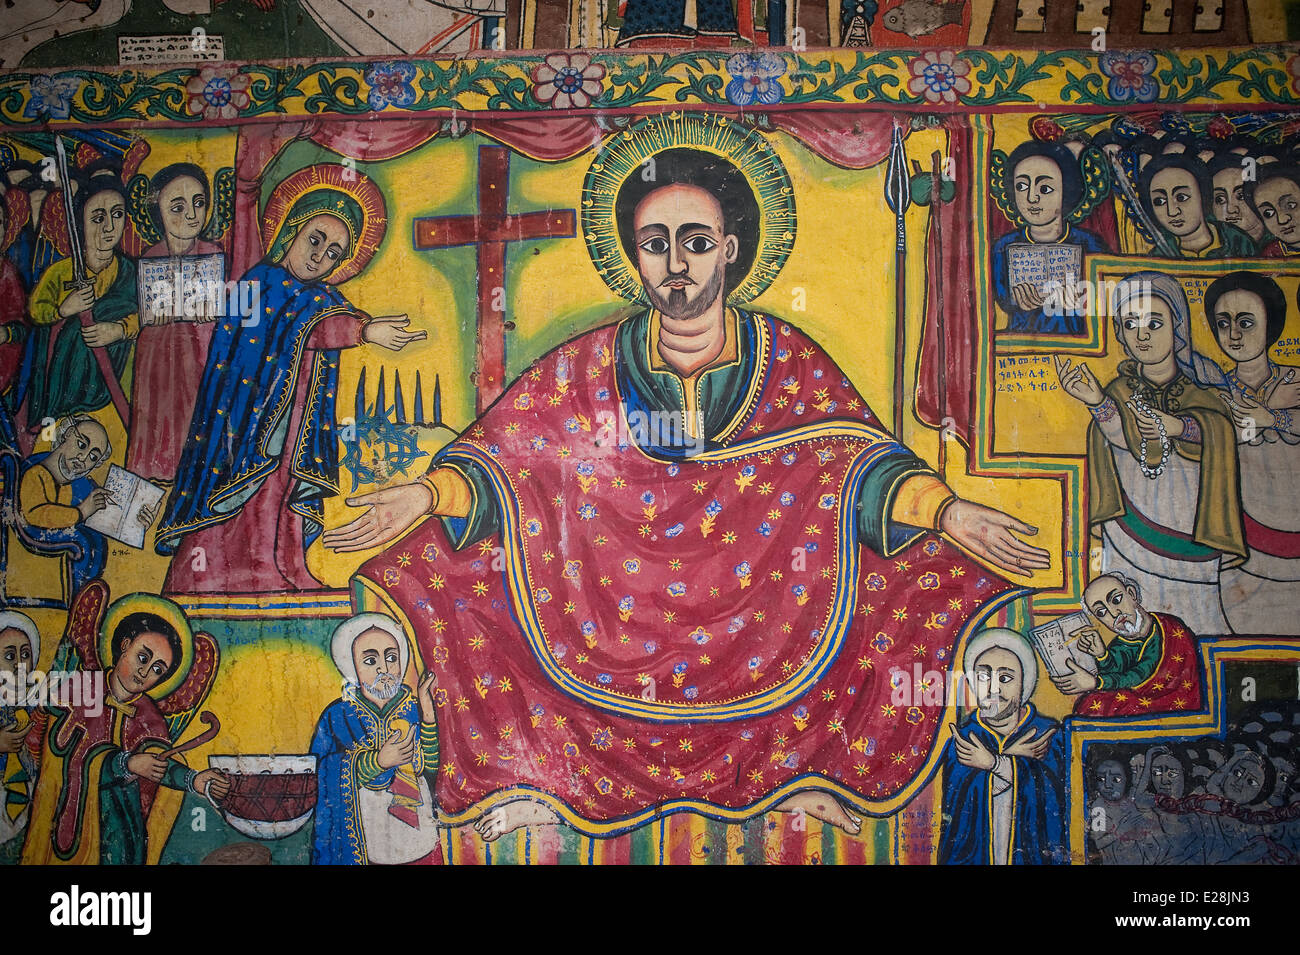 Mural painting in a orthodox monastery. It is depicting Jesus  ( Ethiopia) - Stock Image